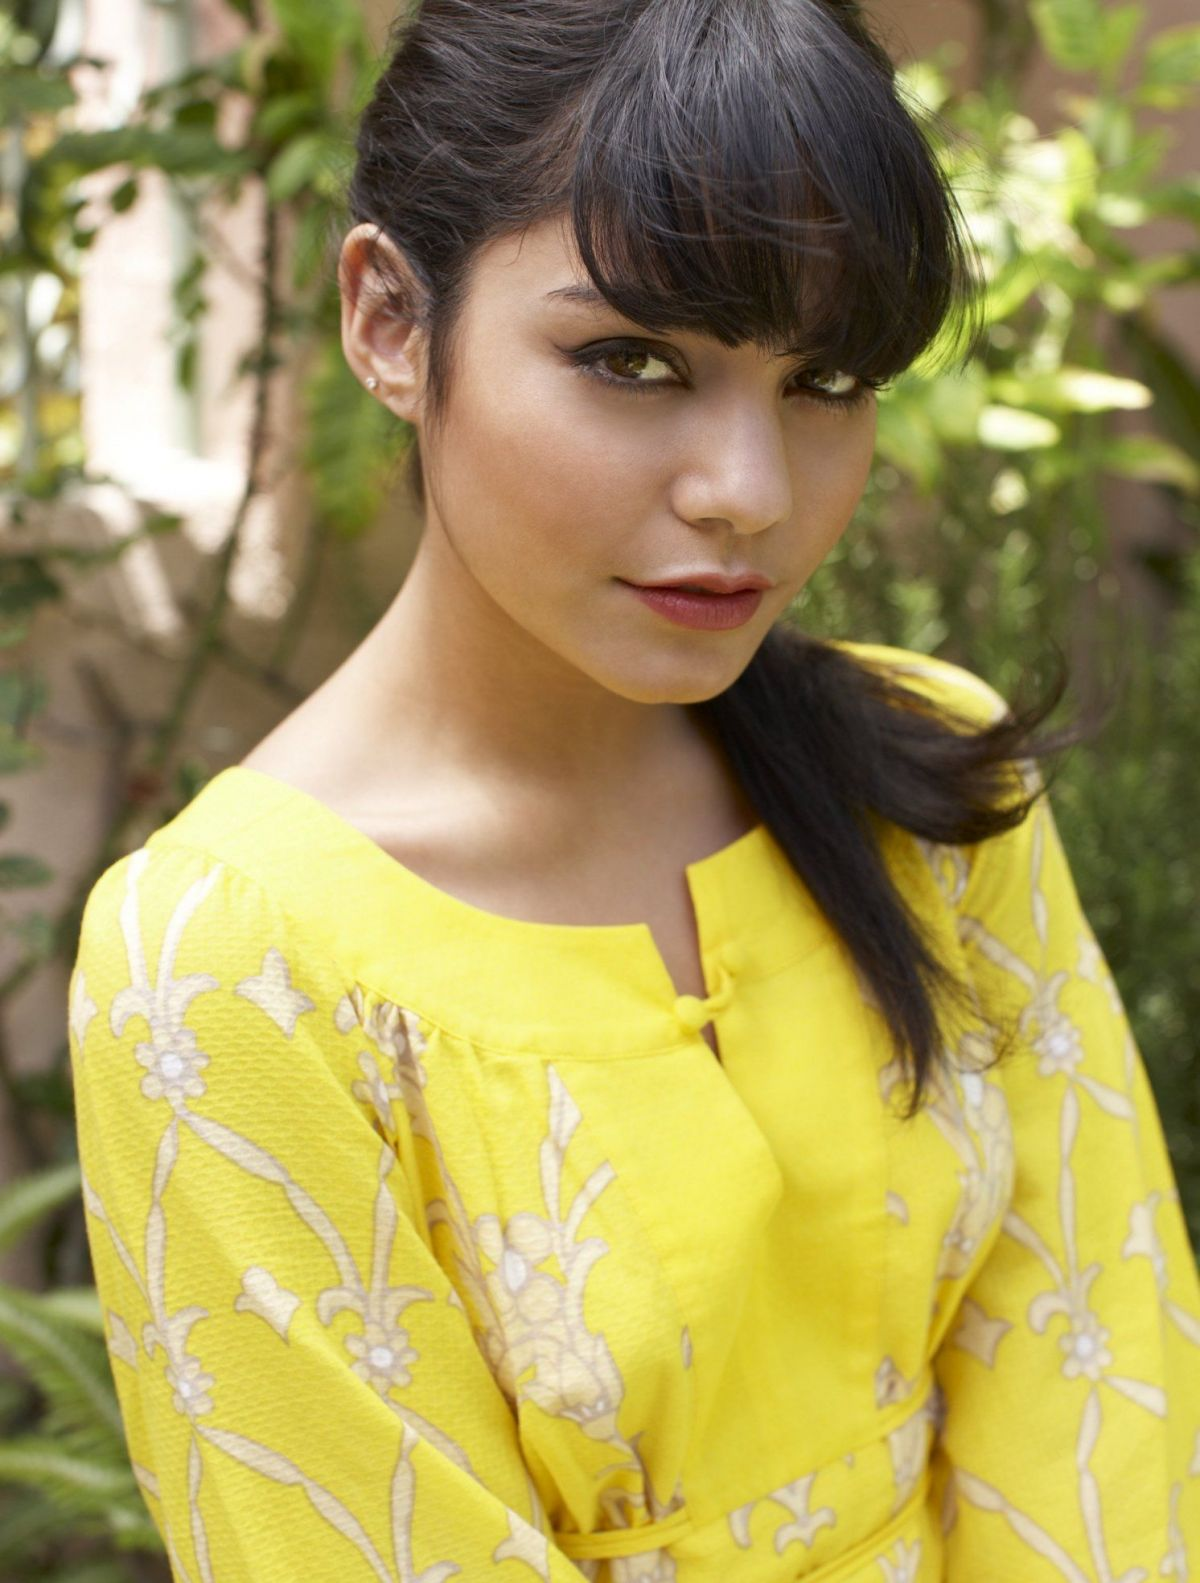 Best from the Past - VANESSA HUDGENS for Parade Magazine, 2009